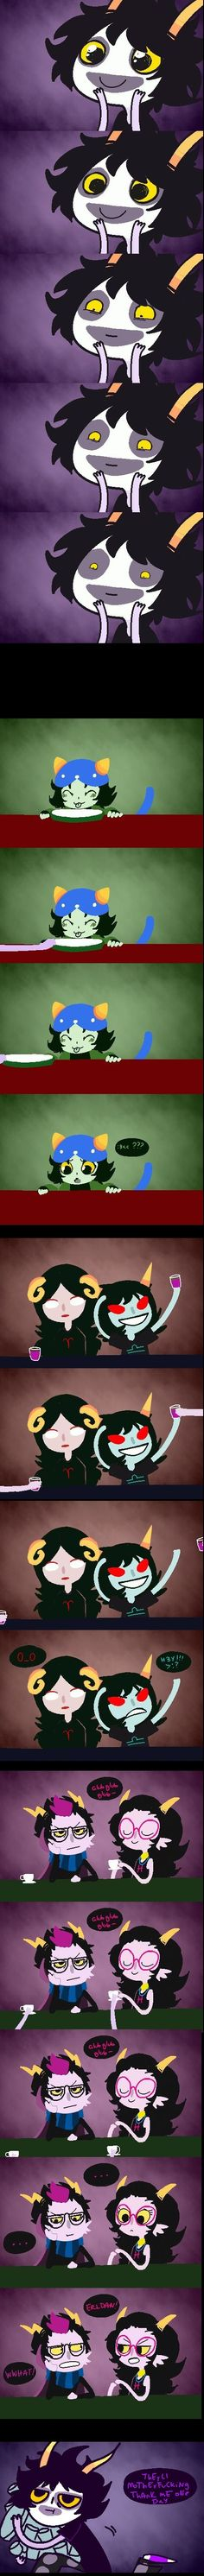 Homestuck- Gamzee XD the video is soo funny it's one of the Ask Gamzee's on YouTube #Christmas #thanksgiving #Holiday #quote